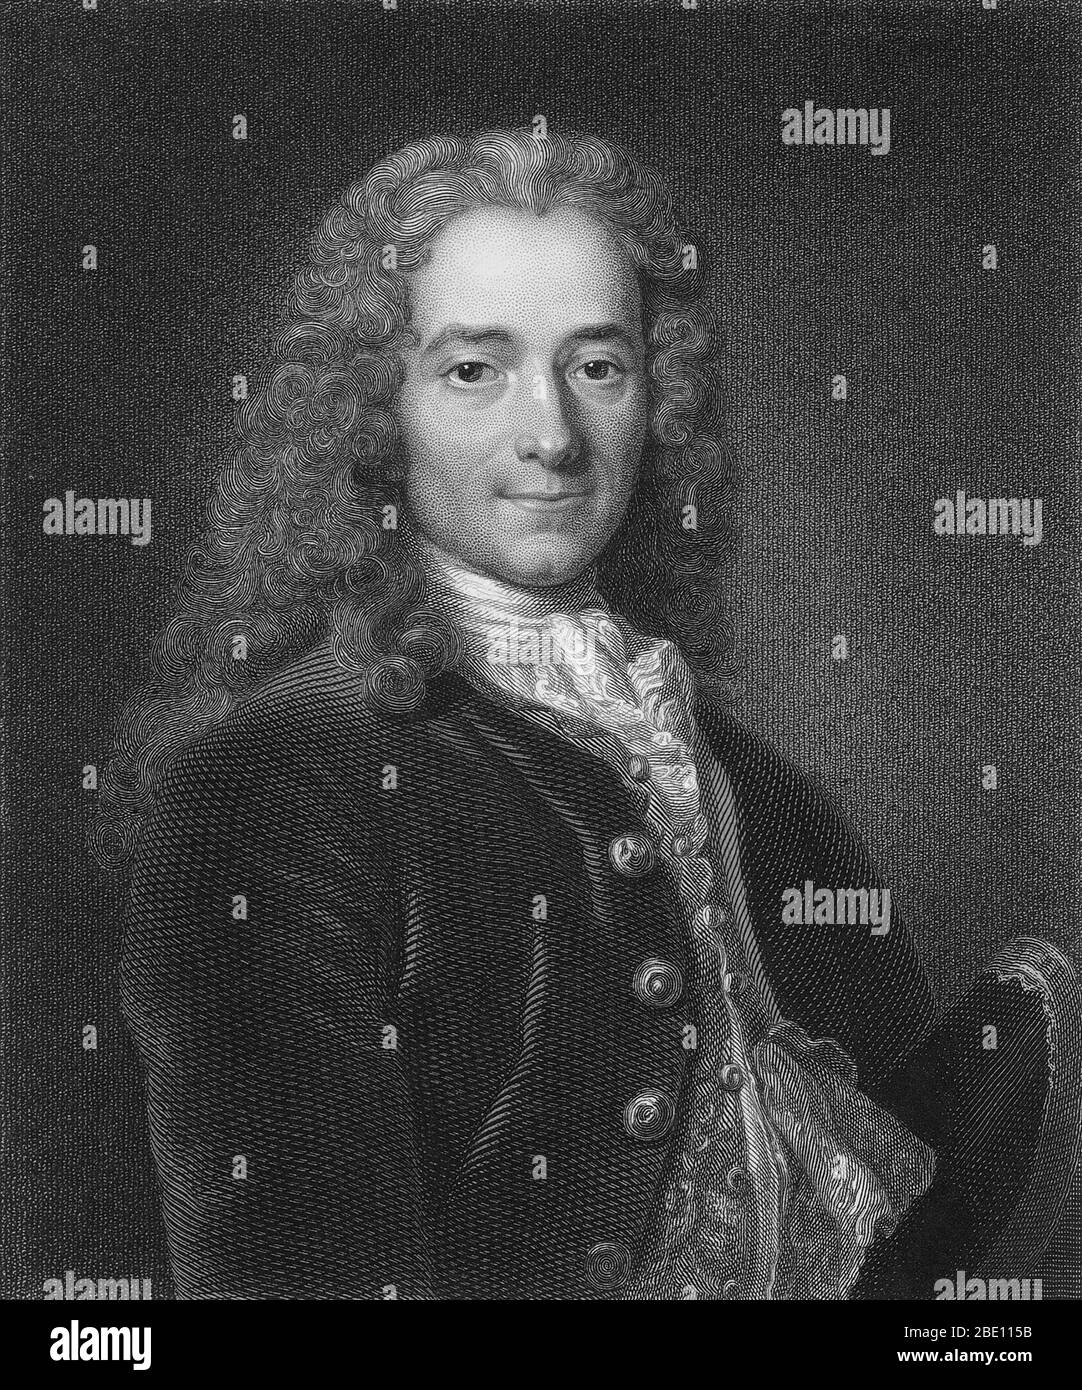 Francois-Marie Arouet (November 21, 1694 - May 30, 1778), known by his nom de plume Voltaire, was a French Enlightenment writer, historian and philosopher famous for his wit, his attacks on the established Catholic Church, and his advocacy of freedom of religion, freedom of expression, and separation of church and state. Voltaire was a versatile writer, producing works in almost every literary form, including plays, poems, novels, essays, and historical and scientific works. He wrote more than 20,000 letters and more than 2,000 books and pamphlets. He was an outspoken advocate, despite the ris Stock Photo